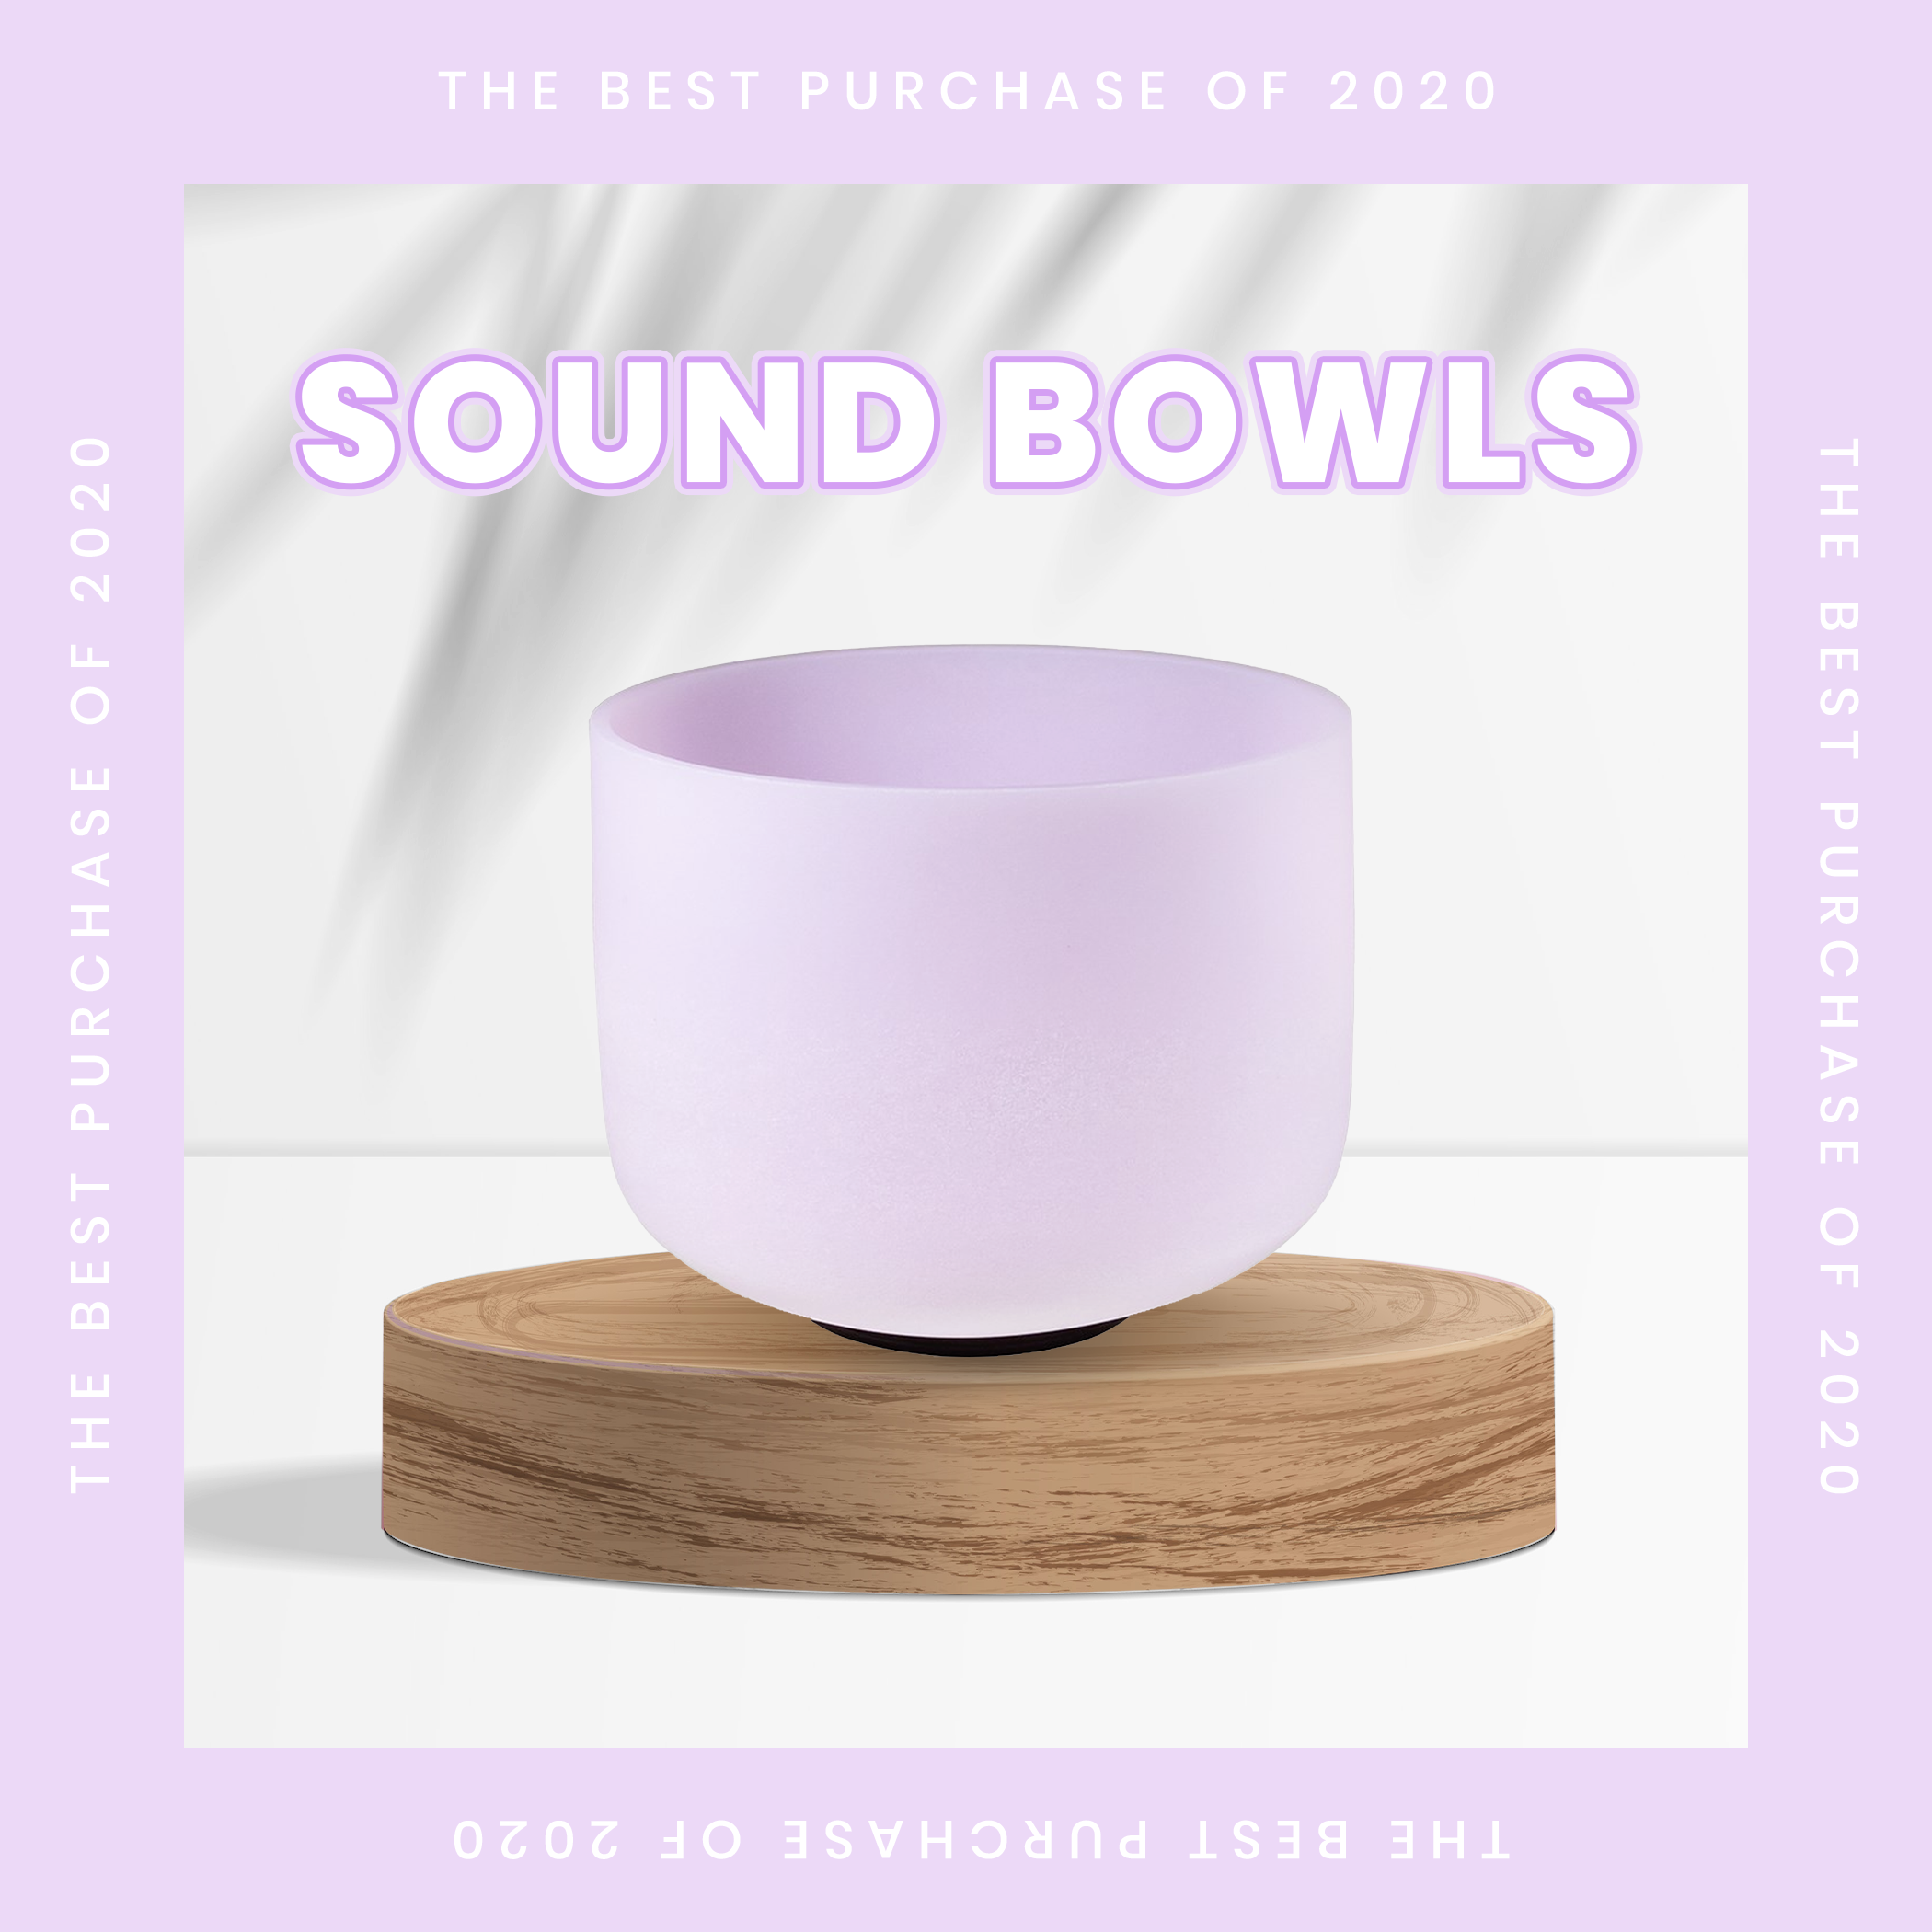 Sound Bowls: The Best Buy of 2020